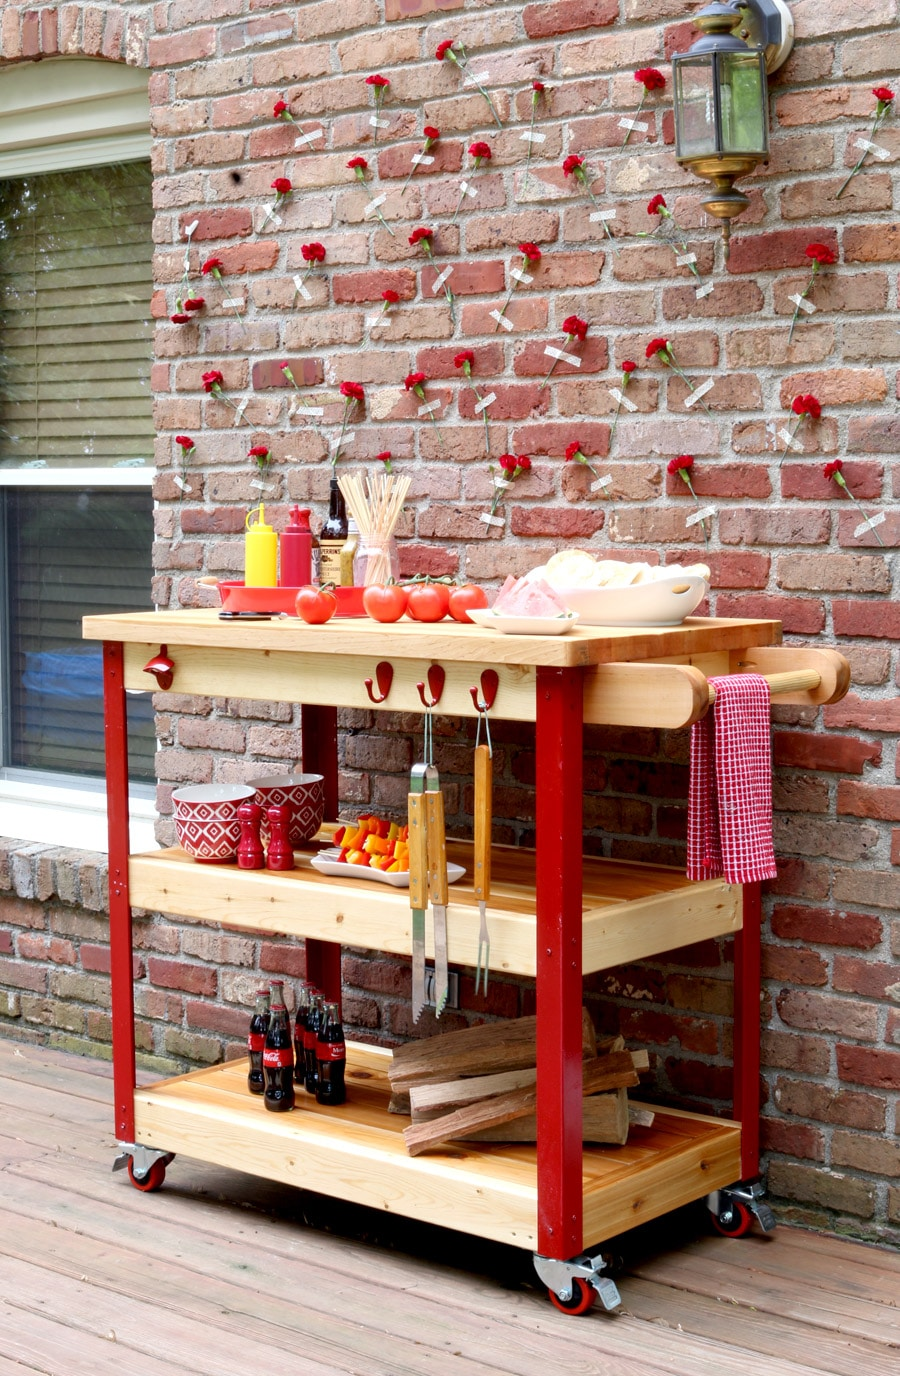 How to build an outdoor rolling grill cart